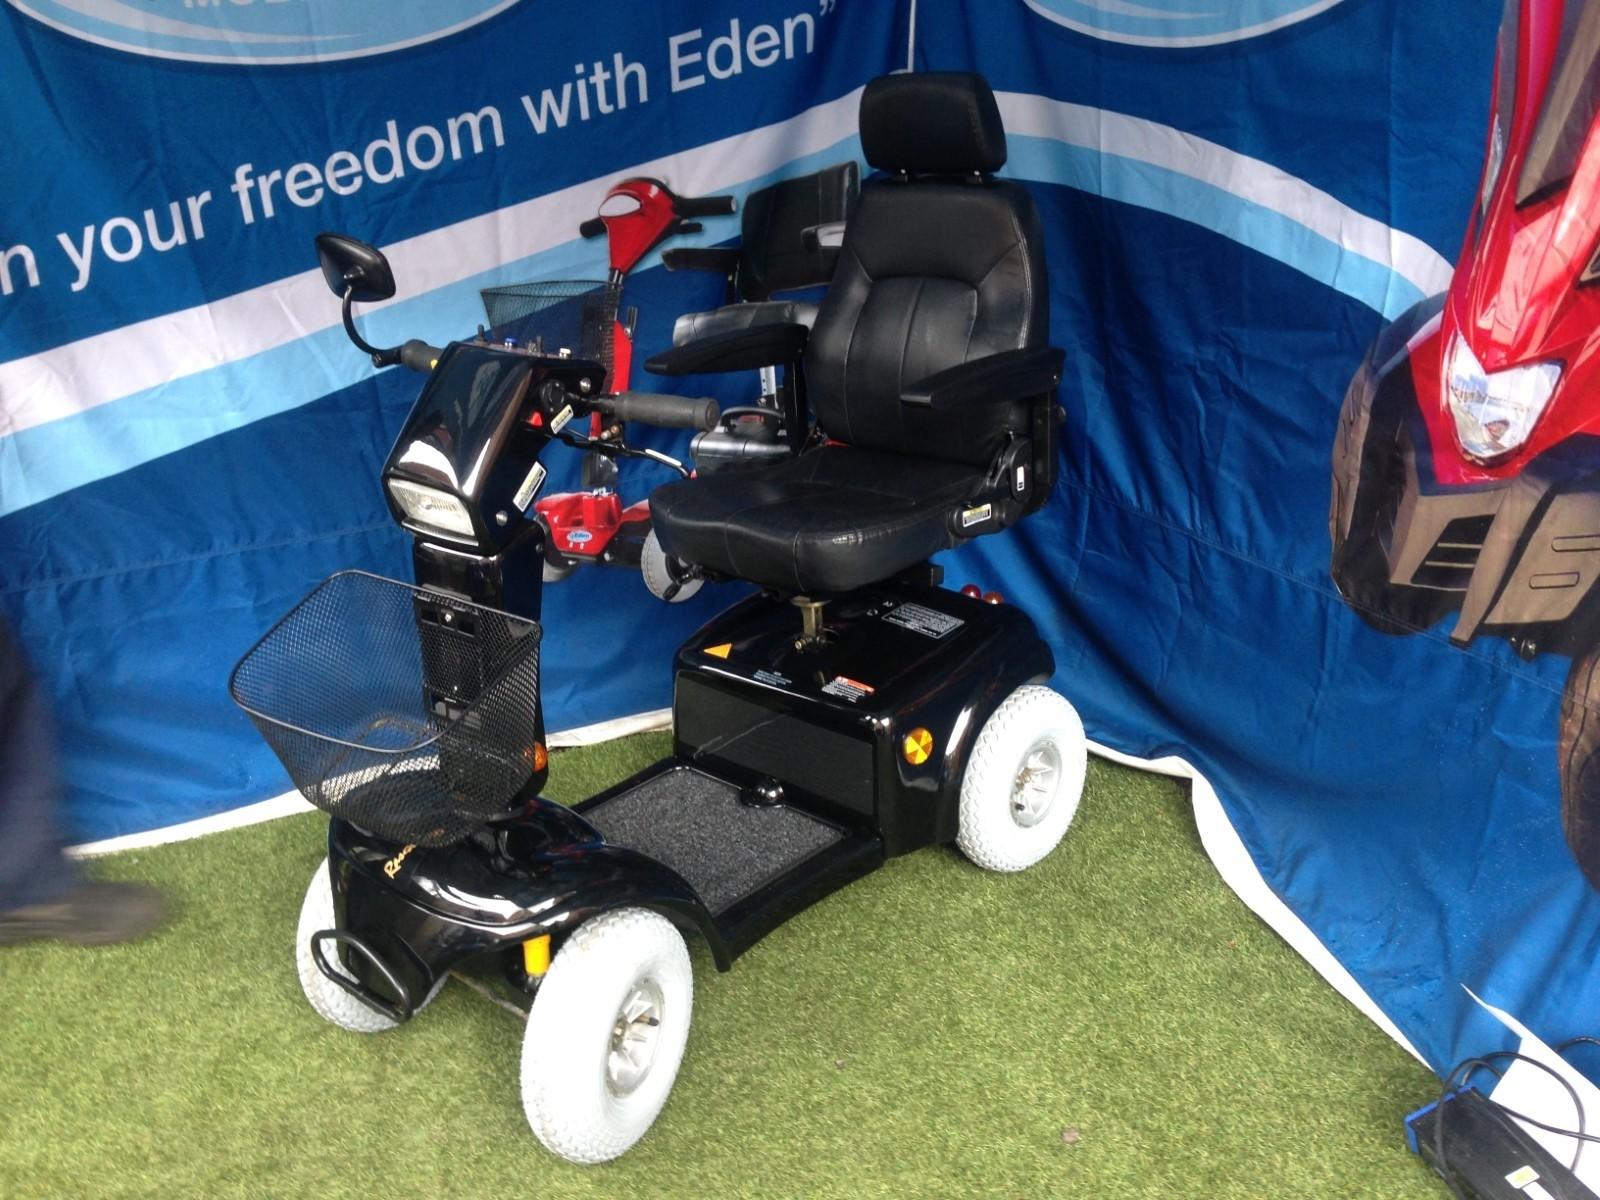 Electric Mobility Rascal Scooter Black